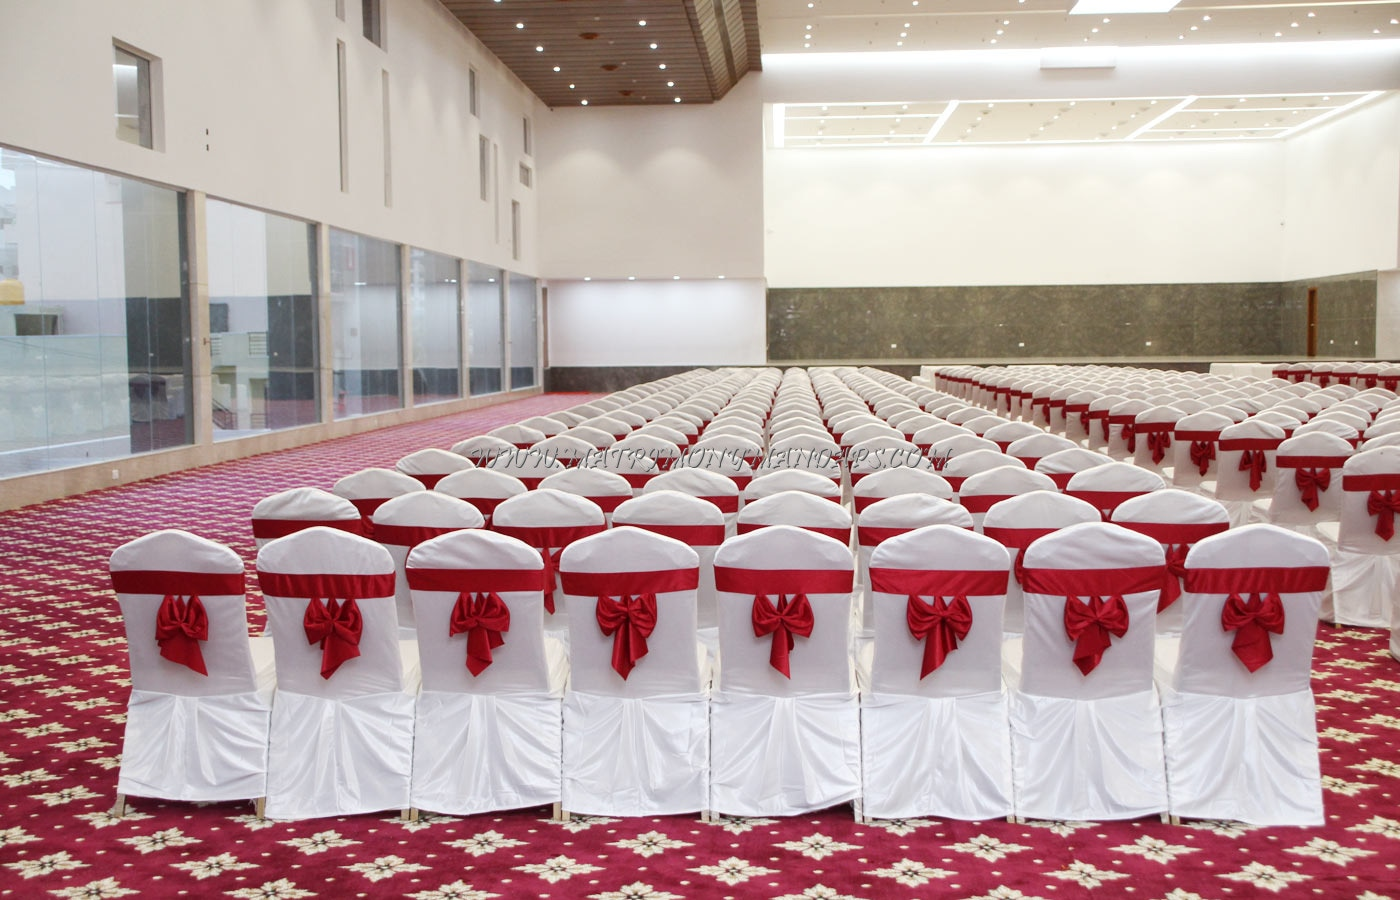 Find the availability of the V Legy Convention Center (A/C) in Banashankari, Bangalore and avail special offers